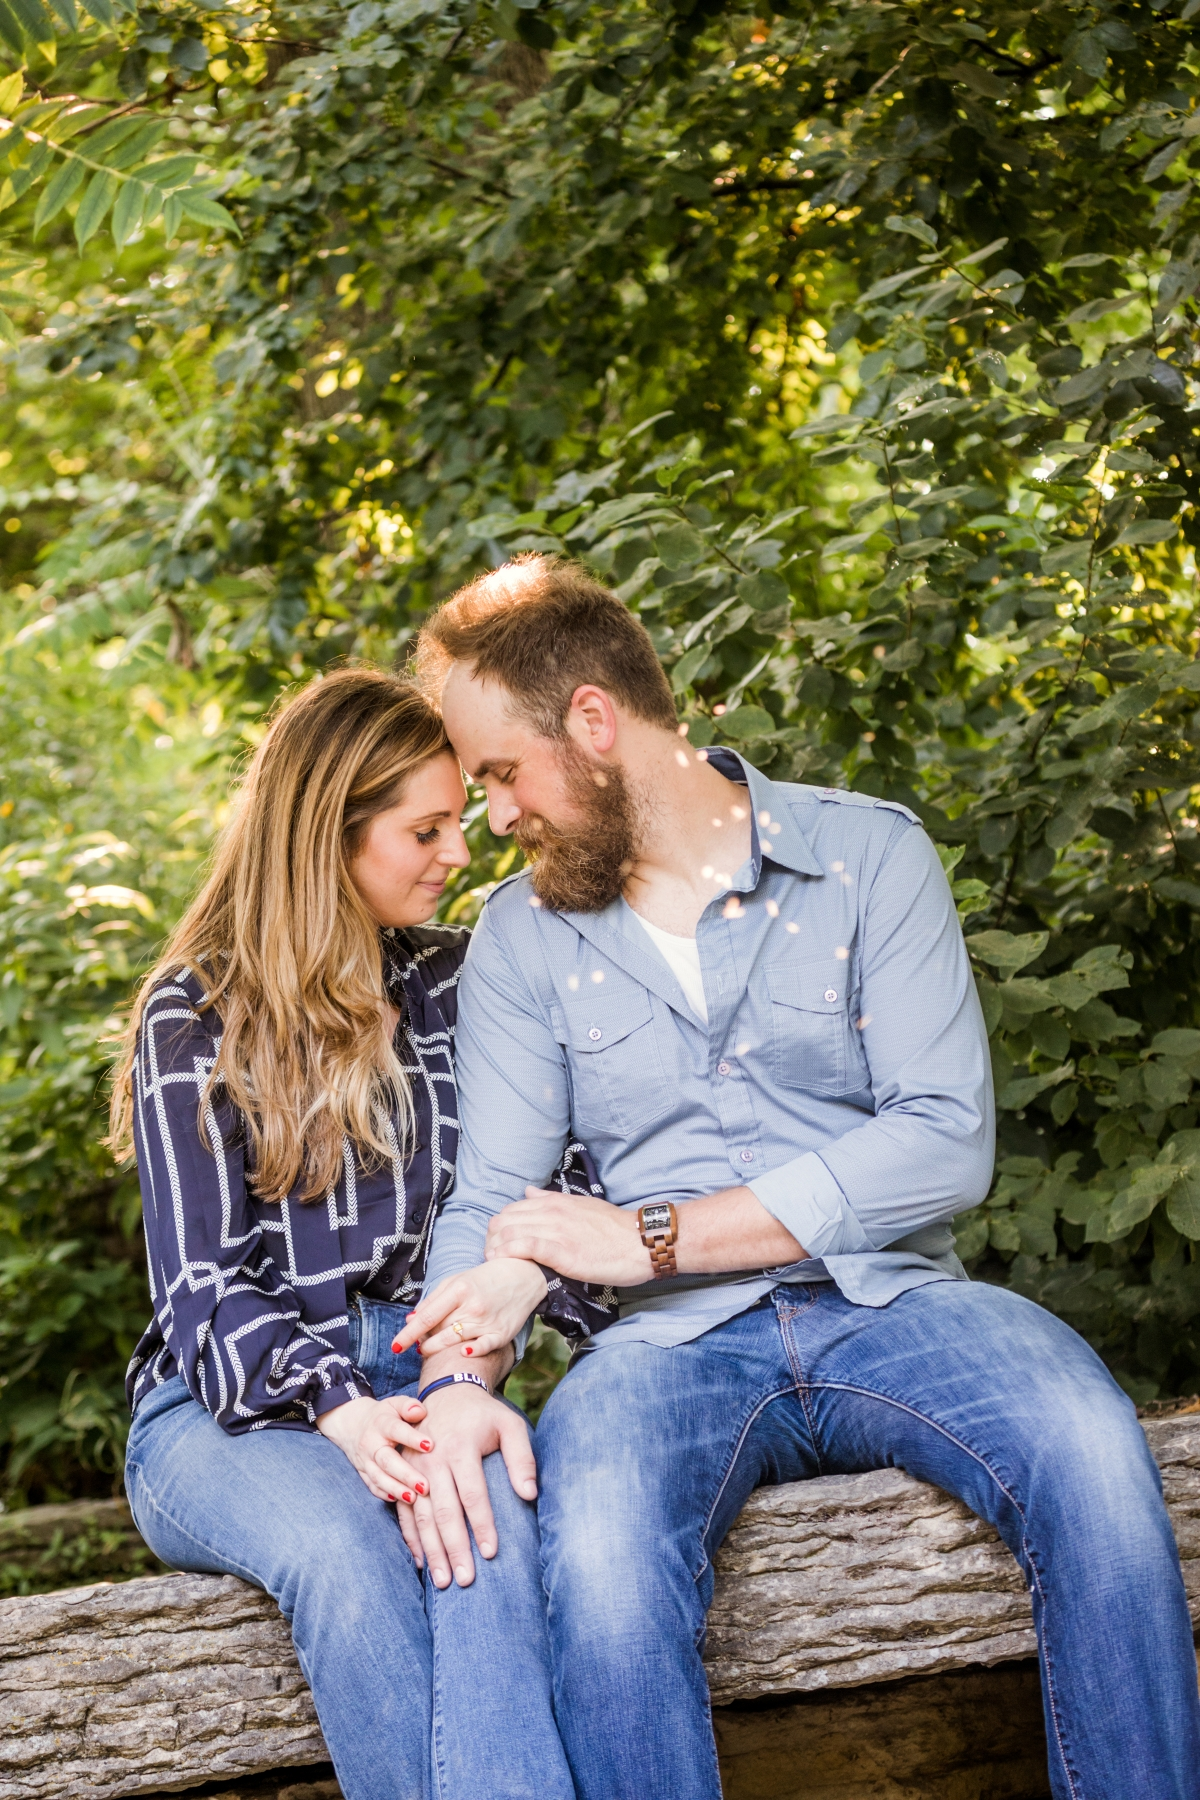 Lincoln Park Conservatory Engagement Session 46